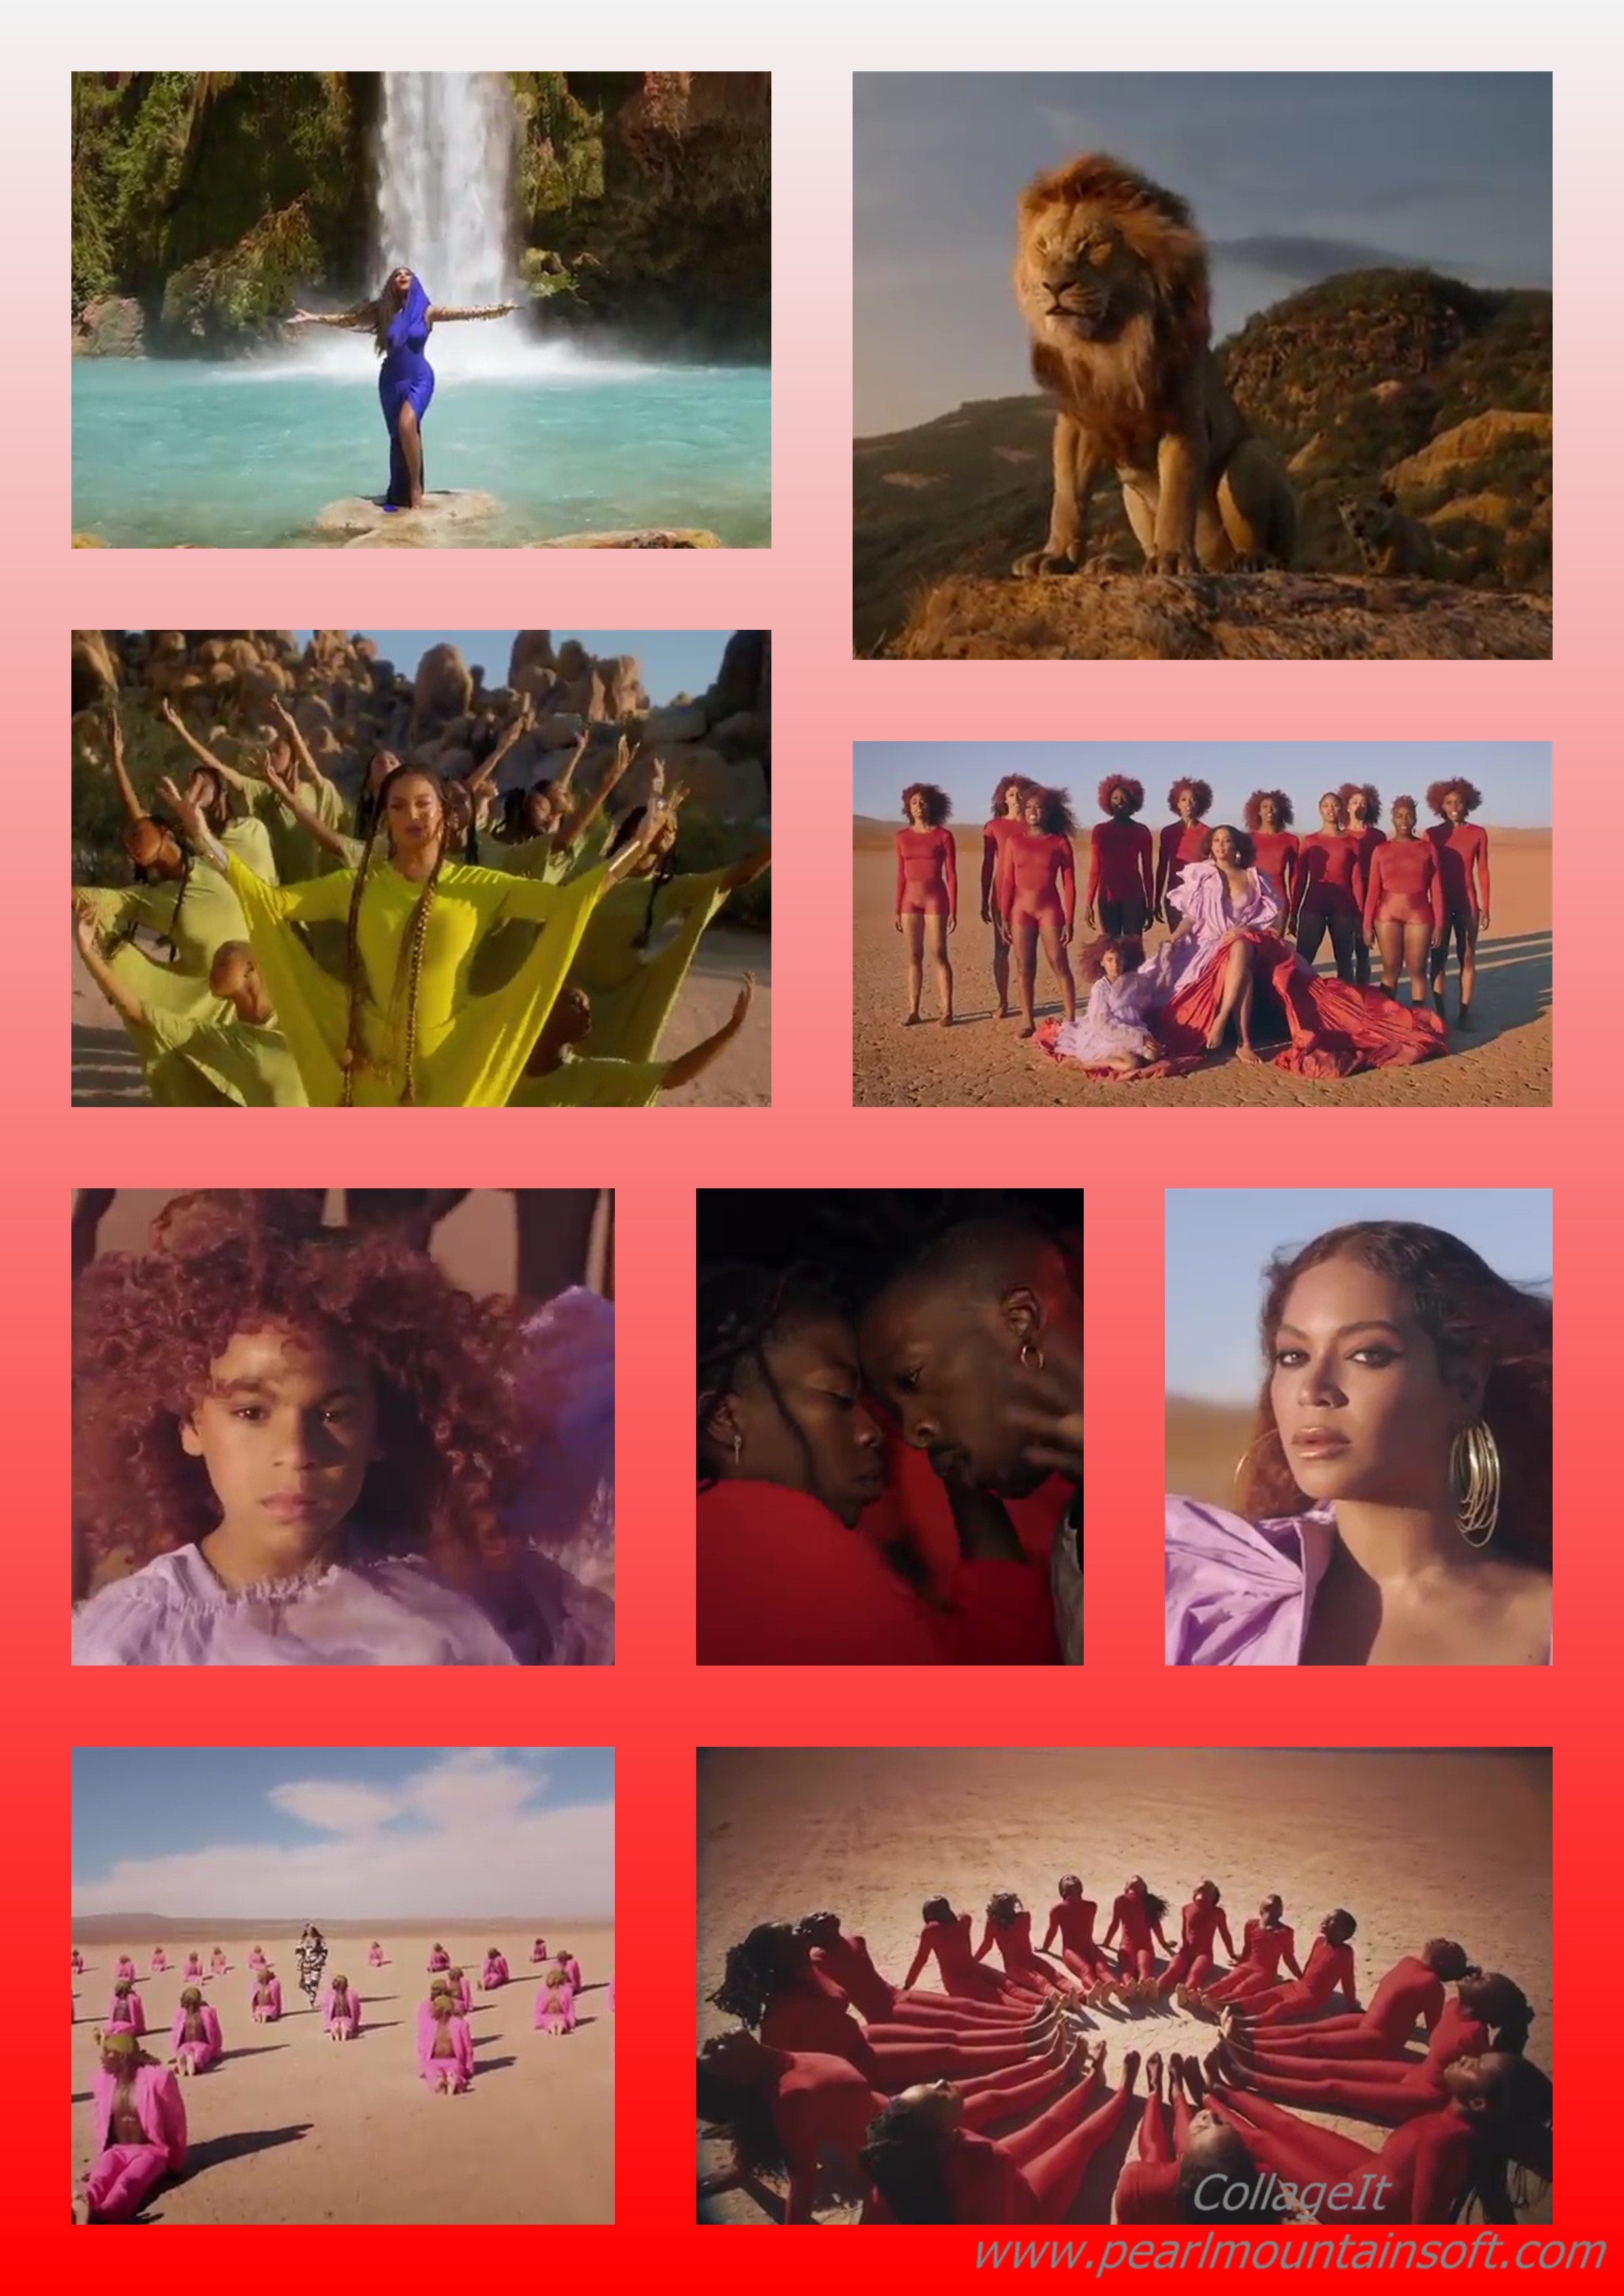 "(+LYRICS+TRANSLATION+MEANING) MUSIC REVIEW: SPIRIT BY BEYONCE ""INTERESTING VISUAL!"""